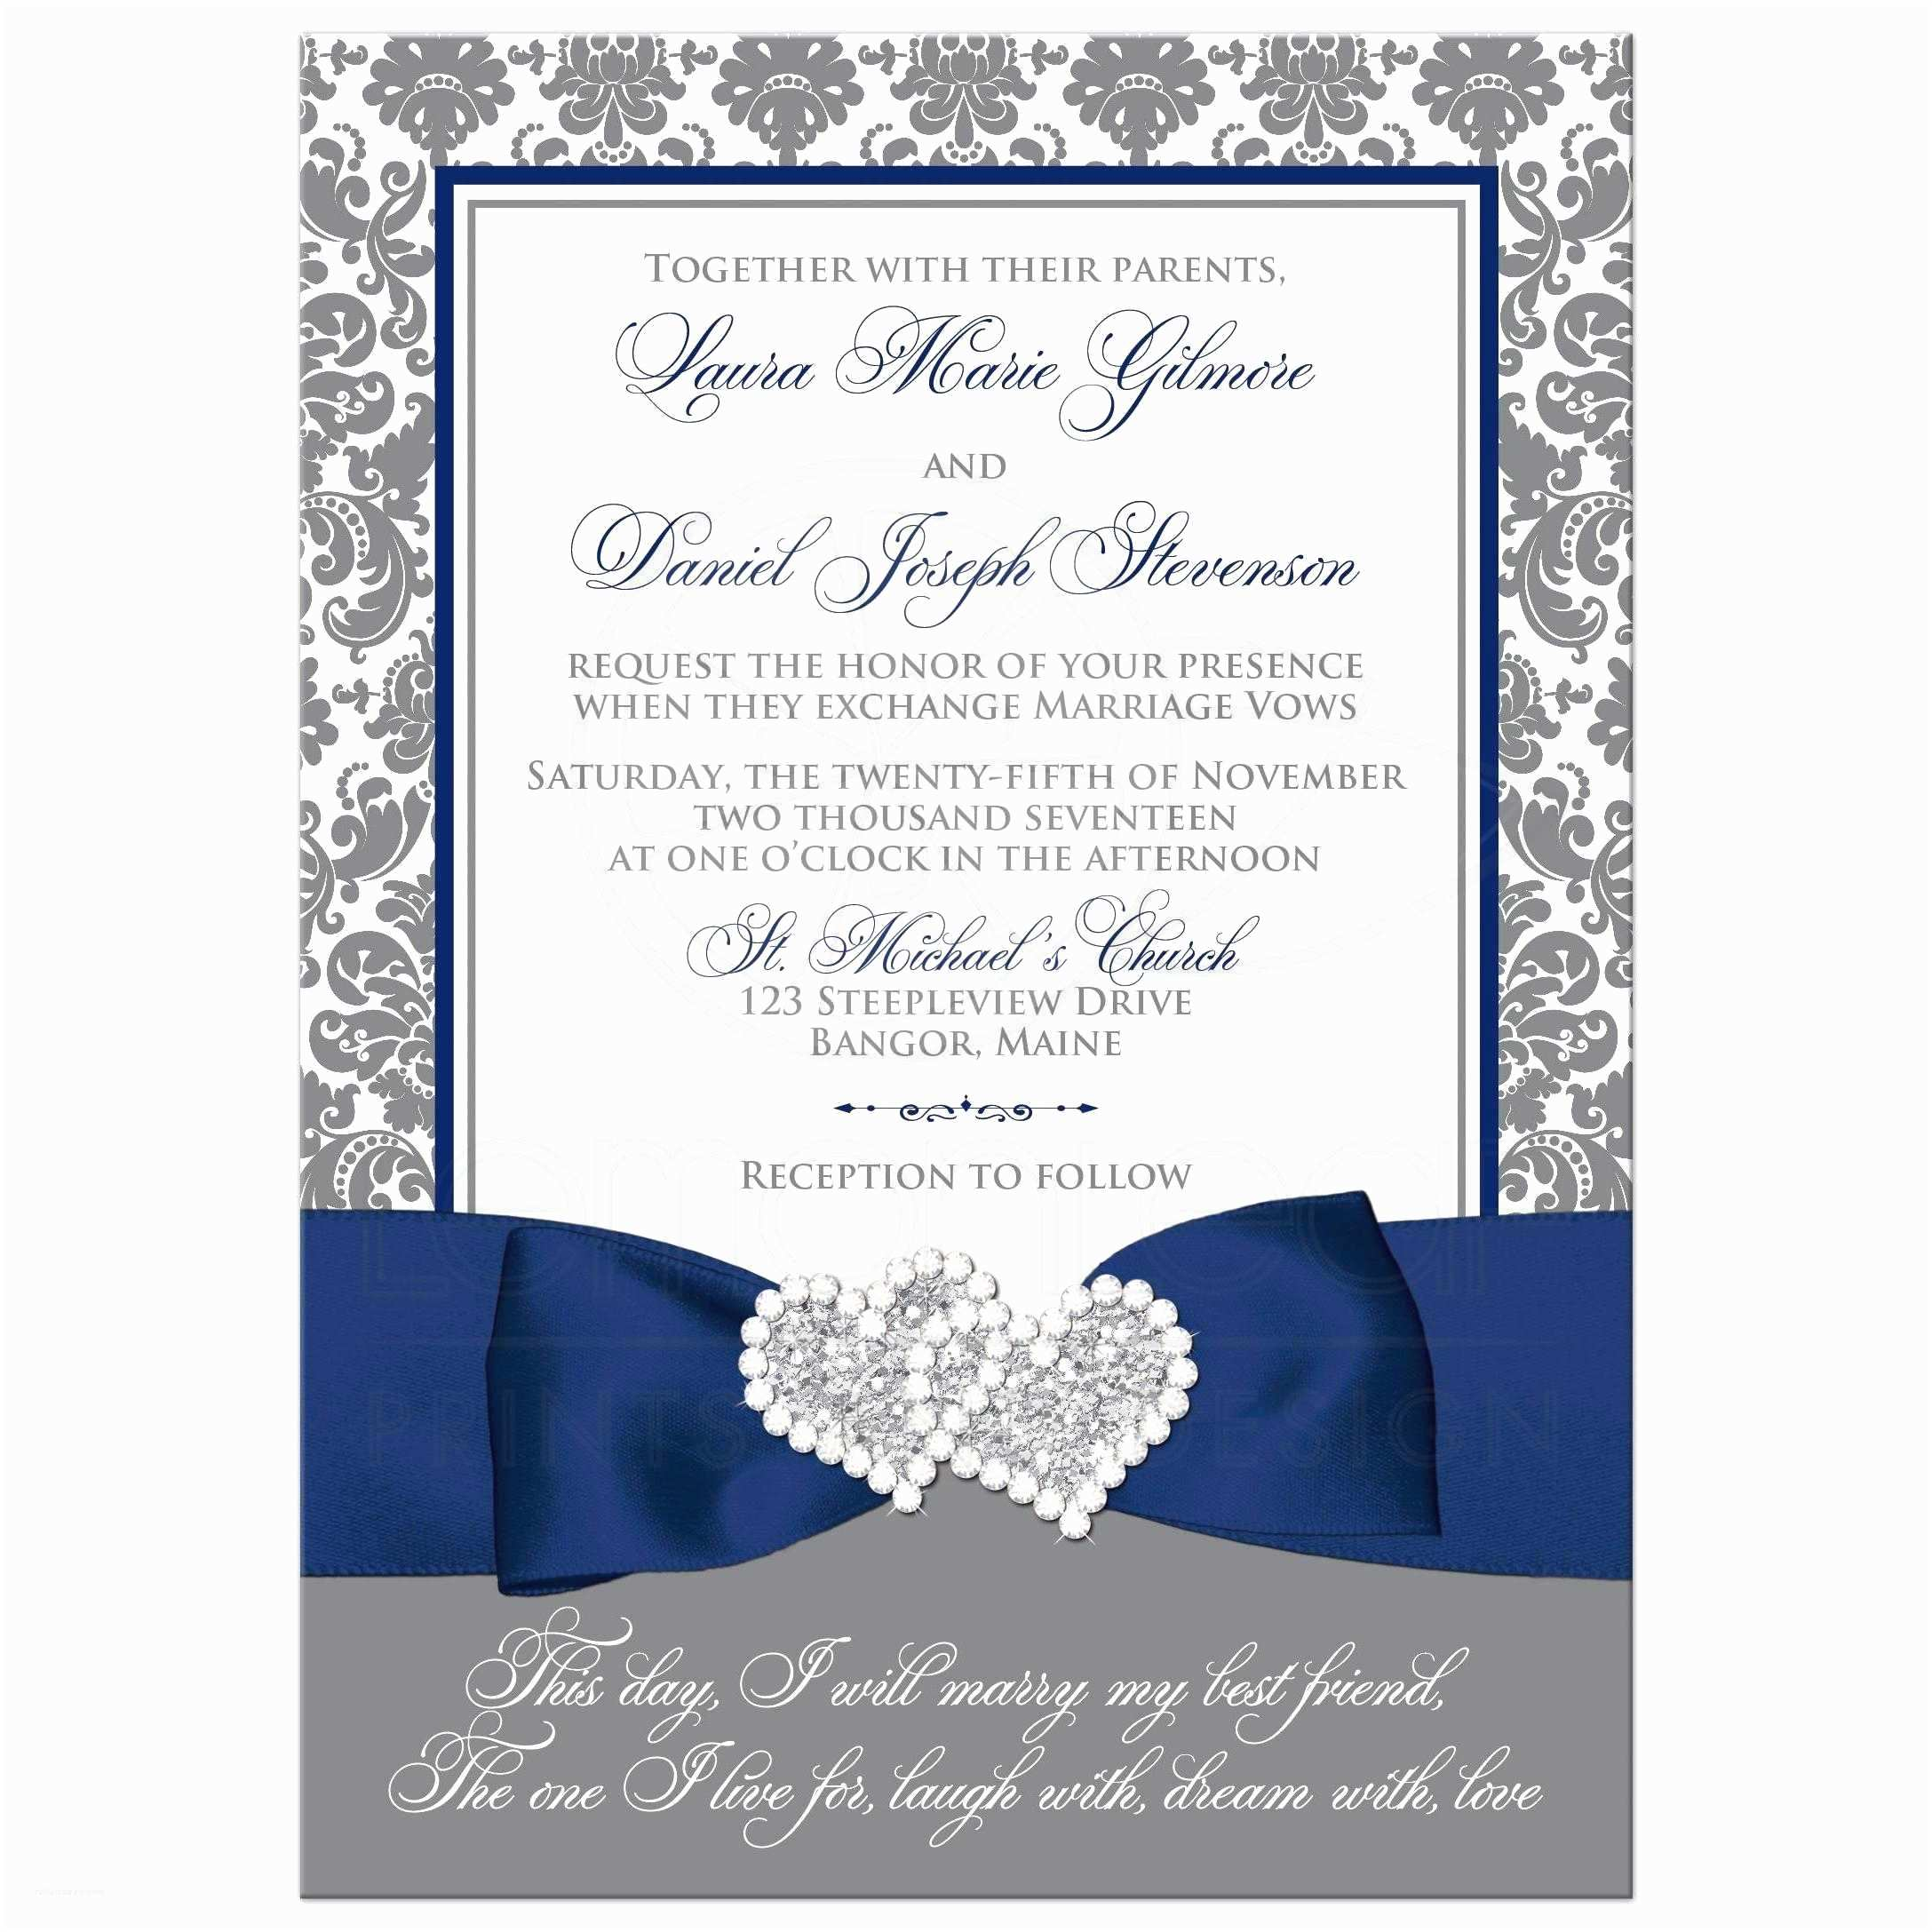 White Wedding Invitations Stunning Blue and White Wedding Invitations Contemporary